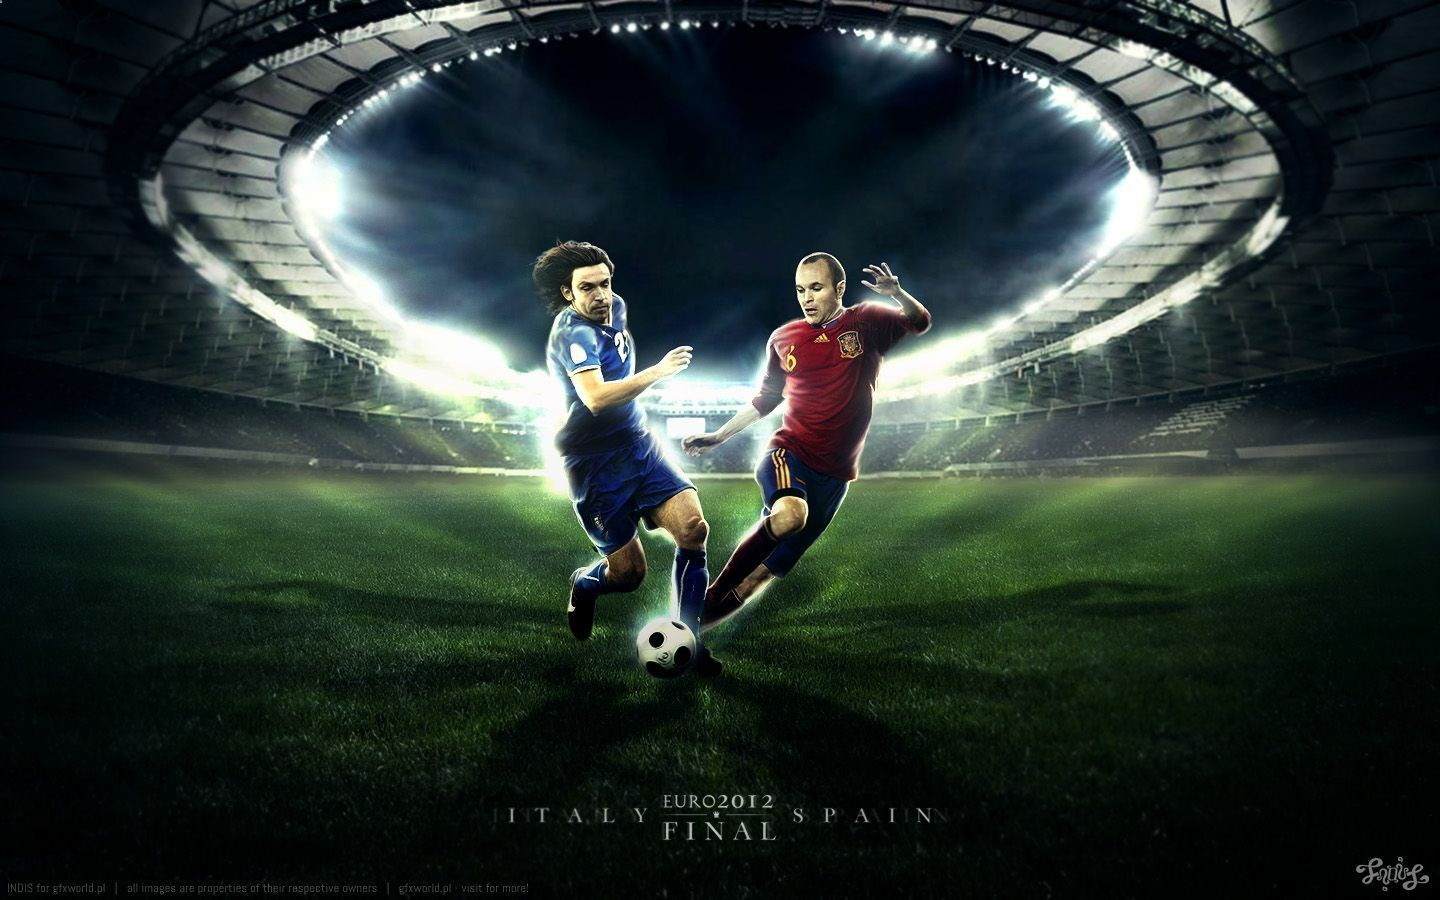 Celebrity-Hollywood-Soccer-Football-Desktops-1920×1080-Football-Soccer-Wallpa-wallpaper-wpc90010306